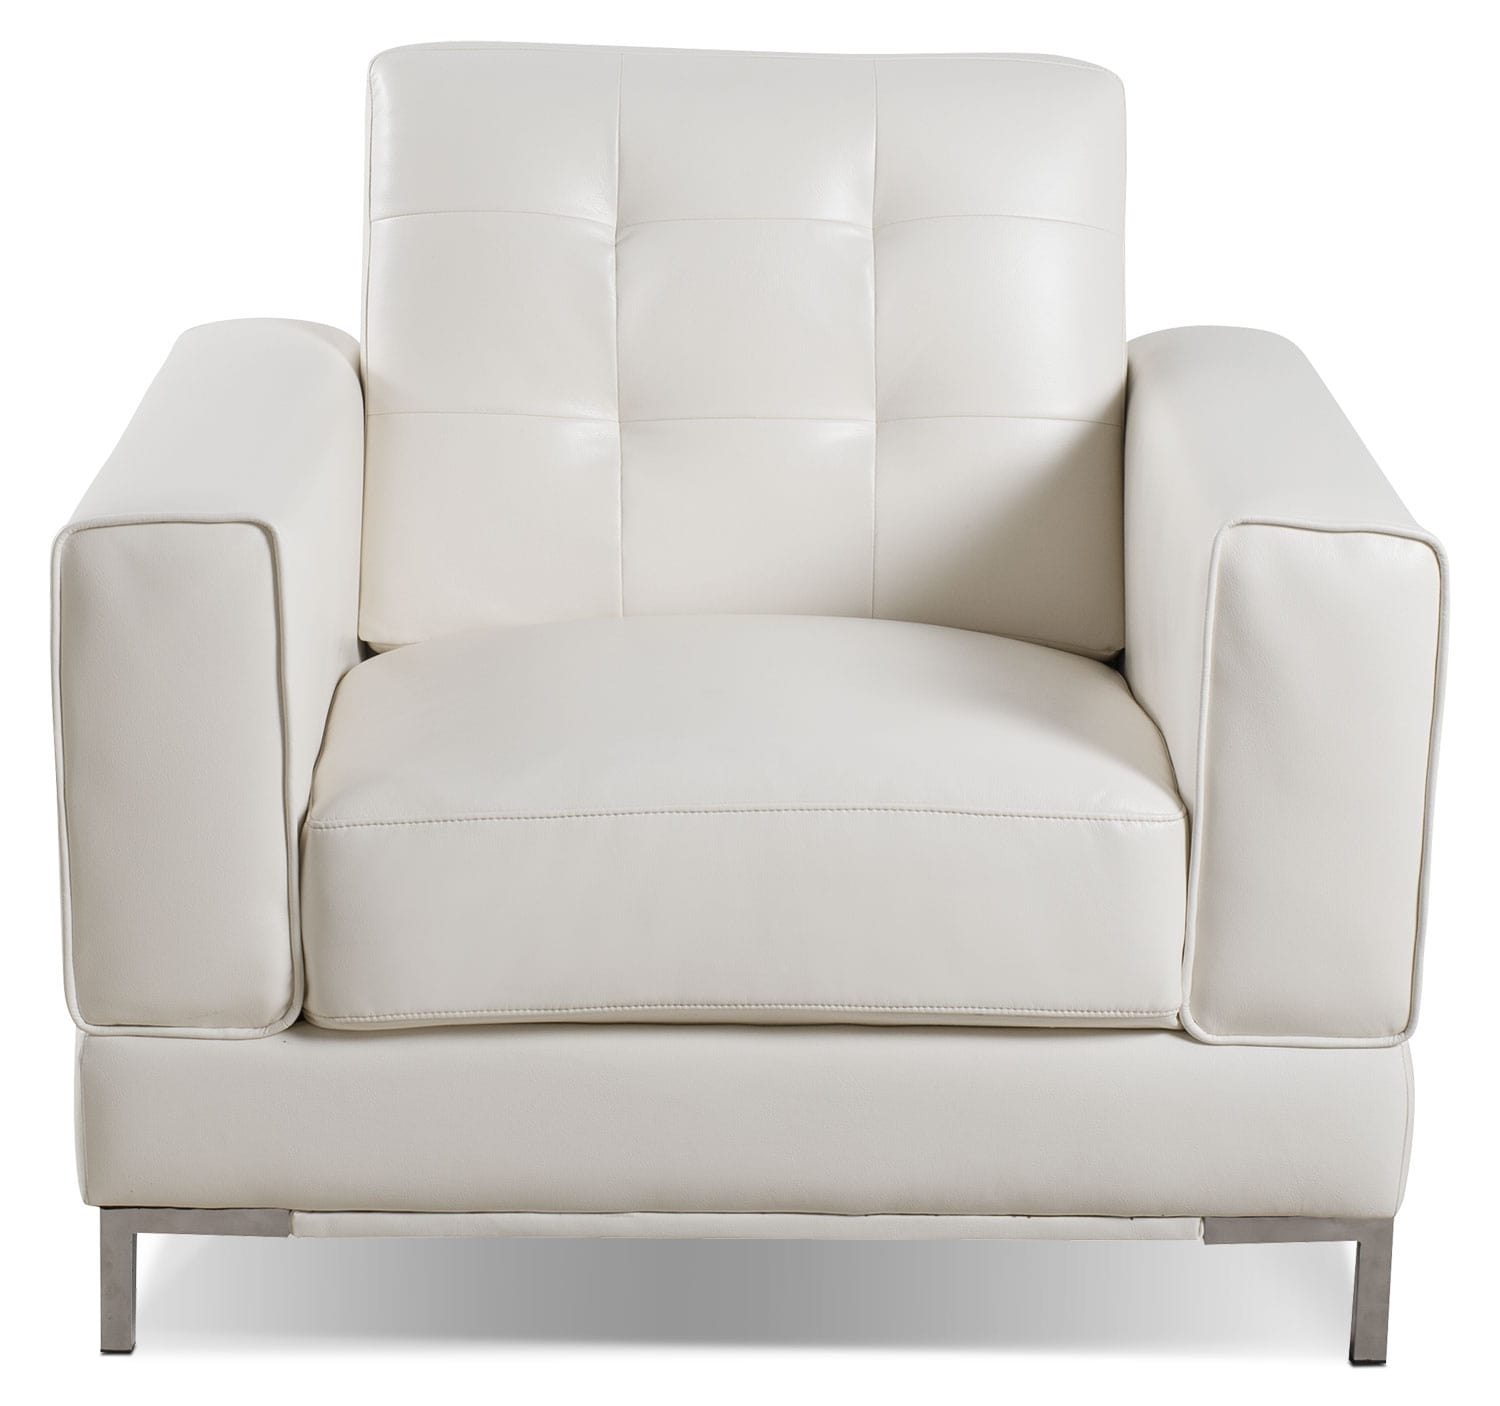 Living Room Furniture - Myer Leather-Look Fabric Chair - Cream